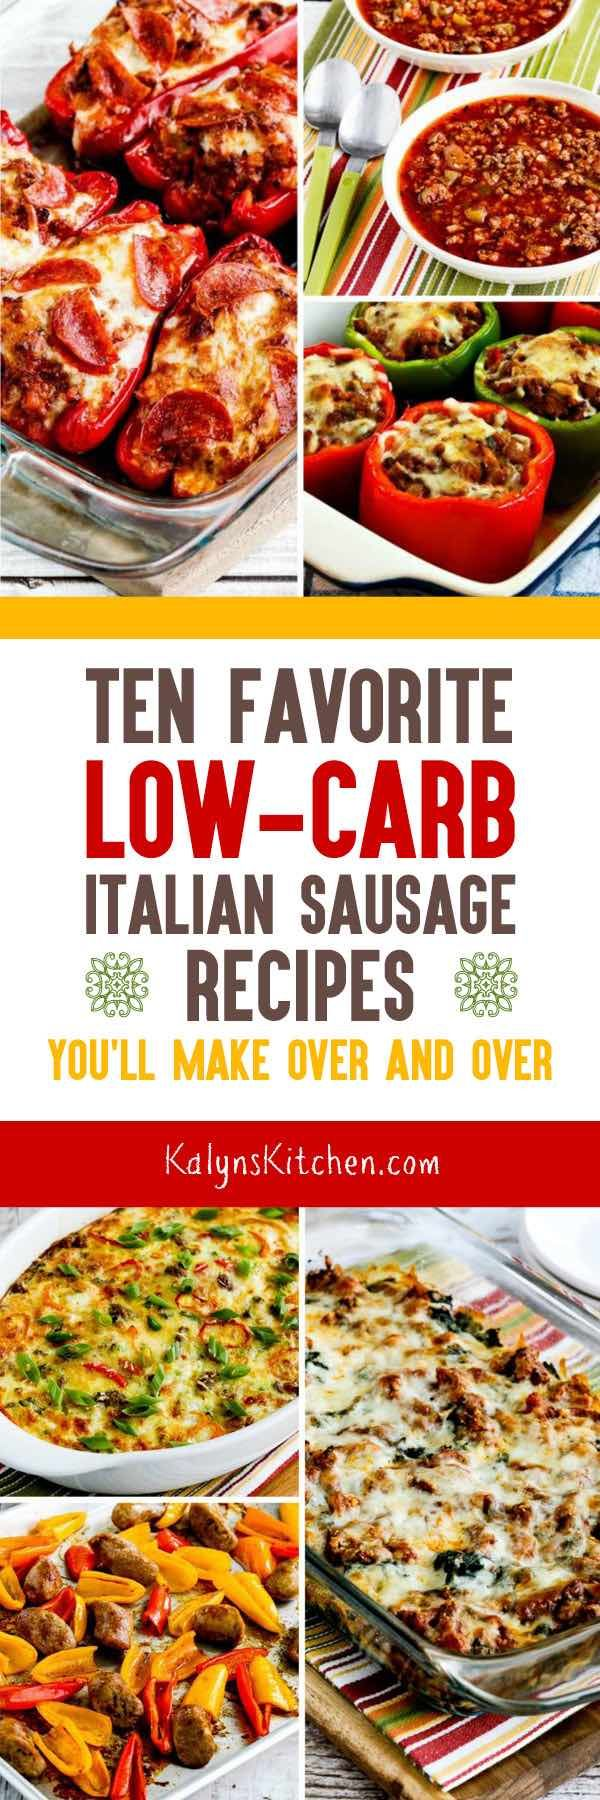 Italian Sausage is one of my absolute favorite low-carb ingredients, and here are my Favorite Low-Carb Italian Sausage Recipes You'll Make Over and Over! Whether you use turkey or pork Italian Sausage, I bet some of these might become among your favorite dinners; enjoy!  [found on KalynsKitchen.com] #LowCarbItalianSausage #ItalianSausage #ItalianSausageRecipes #LowCarbItalianSausageRecipes